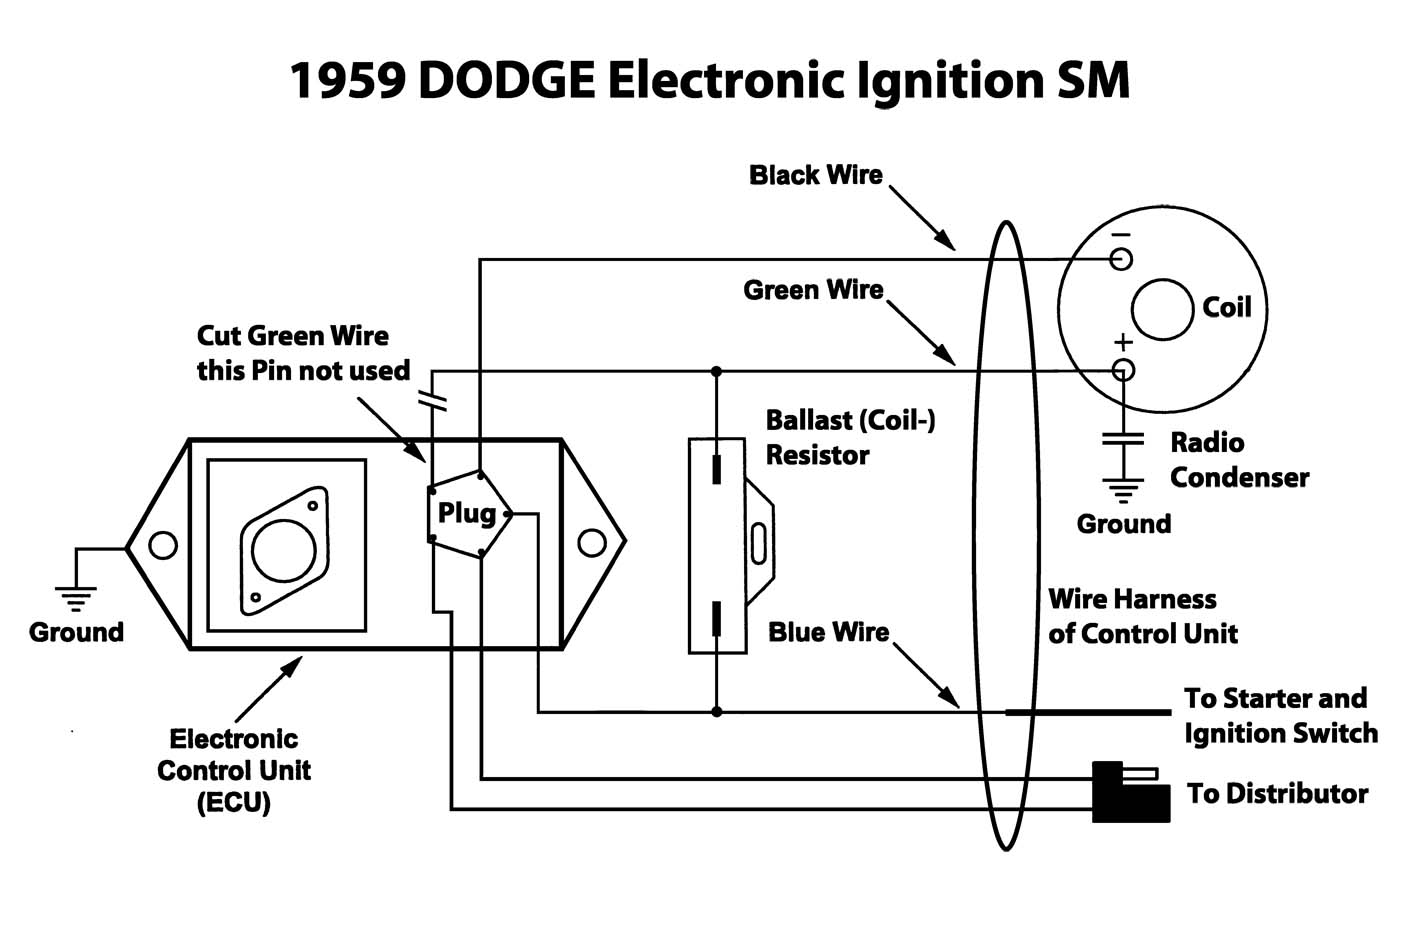 Wiring Diagram For 1983 Nissan 280zx also Car Alternator in addition 2010 Nissan Rogue Fuse Box Diagram Photoshots likewise 2011 Nissan Murano Fuse Box moreover 5wsms Ford F100 When Try Start 67 Ford Pickup No Action. on datsun alternator wiring